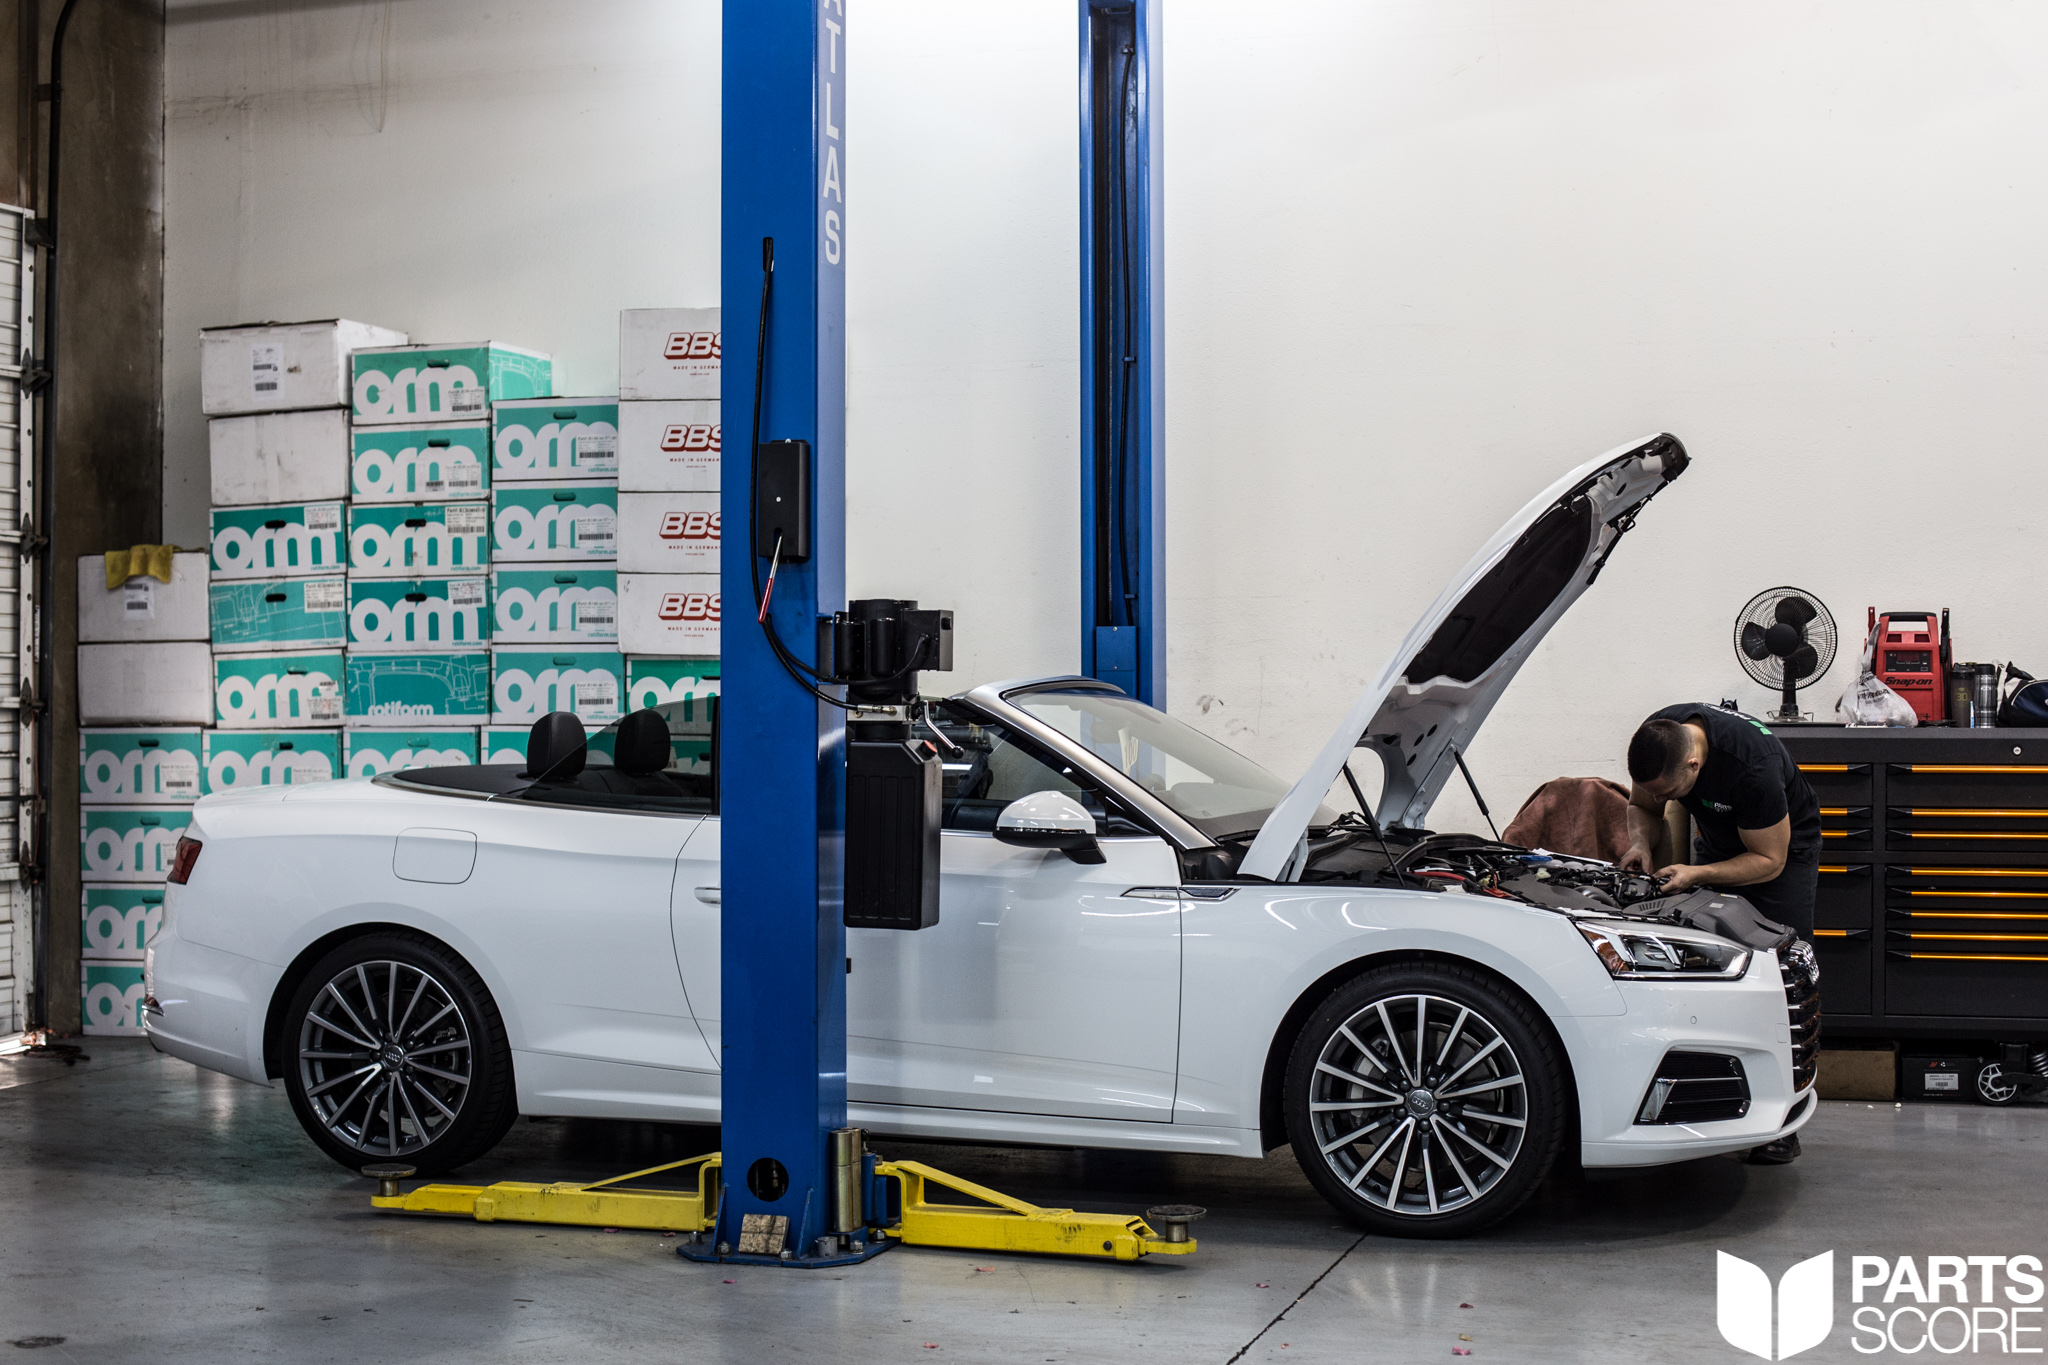 034, 034 motorsport, 034Motorsport, arizona, Audi, audi b9 s4, audi b9 s5, audi has kit, audi performance, audi s4, audi s5 has kit, audi s5 kw, awe touring exhaust, awe track exhaust, awe tuning, awe tuning exhaust, awe tuning switch path, b9 a4 grill, b9 a4 rs grill, b9 a4 wheels, b9 a5 grill, b9 a5 rs grill, b9 a5 wheels, b9 audi aftermarket wheels, b9 audi has kit, b9 audi hre wheels, b9 audi lowering, b9 audi mods, b9 audi springs, b9 audi wheel, b9 audi wheels, b9 bbs wheels, b9 h and r springs, b9 h r coilovers, b9 h&r springs, b9 has kit, b9 modifications, b9 performance, b9 s4, b9 s4 034, b9 s4 034 motorsports, b9 s4 apr, b9 s4 awe tuning, b9 s4 carbon fiber, b9 s4 downpipe, b9 s4 exhaust, b9 s4 flash, b9 s4 flash tune, b9 s4 front lip, b9 s4 giac, b9 s4 giac tune, b9 s4 grill, b9 s4 h and r coilovers, b9 s4 h r coilovers, b9 s4 h&r coilovers, b9 s4 h&r springs, b9 s4 has kit, b9 s4 intake, b9 s4 kw coilovers, b9 s4 kw has kit, b9 s4 kwv1, b9 s4 kwv2, b9 s4 kwv3, b9 s4 lip, b9 s4 milltek, b9 s4 modification, b9 s4 mods, b9 s4 navigation, b9 s4 ohlins, b9 s4 ohlins road and track, b9 s4 painted reflectors, b9 s4 performance, b9 s4 performance mods, b9 s4 power, b9 s4 spacers, b9 s4 spoiler, b9 s4 springs, b9 s4 tune, b9 s4 wheels, b9 s5, b9 s5 apr, b9 s5 awe tuning, b9 s5 carbon fiber, b9 s5 downpipe, b9 s5 exhaust, b9 s5 front lip, b9 s5 giac, b9 s5 grill, b9 s5 h&r springs, b9 s5 has kit, b9 s5 intake, b9 s5 kw has kit, b9 s5 milltek, b9 s5 mods, b9 s5 painted reflectors, b9 s5 performance, b9 s5 power, b9 s5 sportback wheels, b9 s5 springs, b9 s5 wheels, b9 suspension b9 audi suspension, b9 wheels, BBS, bbs usa, bbs wheels, bbs wheels b9, giac flash, giac tune, giactuned, glacier white, h and r coilovers b9, has kit, height adjustable spring kit, kw coilovers b9, magma red, mesh, mesh grill, michelin tires, o34, o34 motorsport, o34motorsport, parts score, rs grill, rs4 grill, rs4 s4 grill, s4 b9 cts turbo, scottsdale, strut bar, strut tower, strut tower b